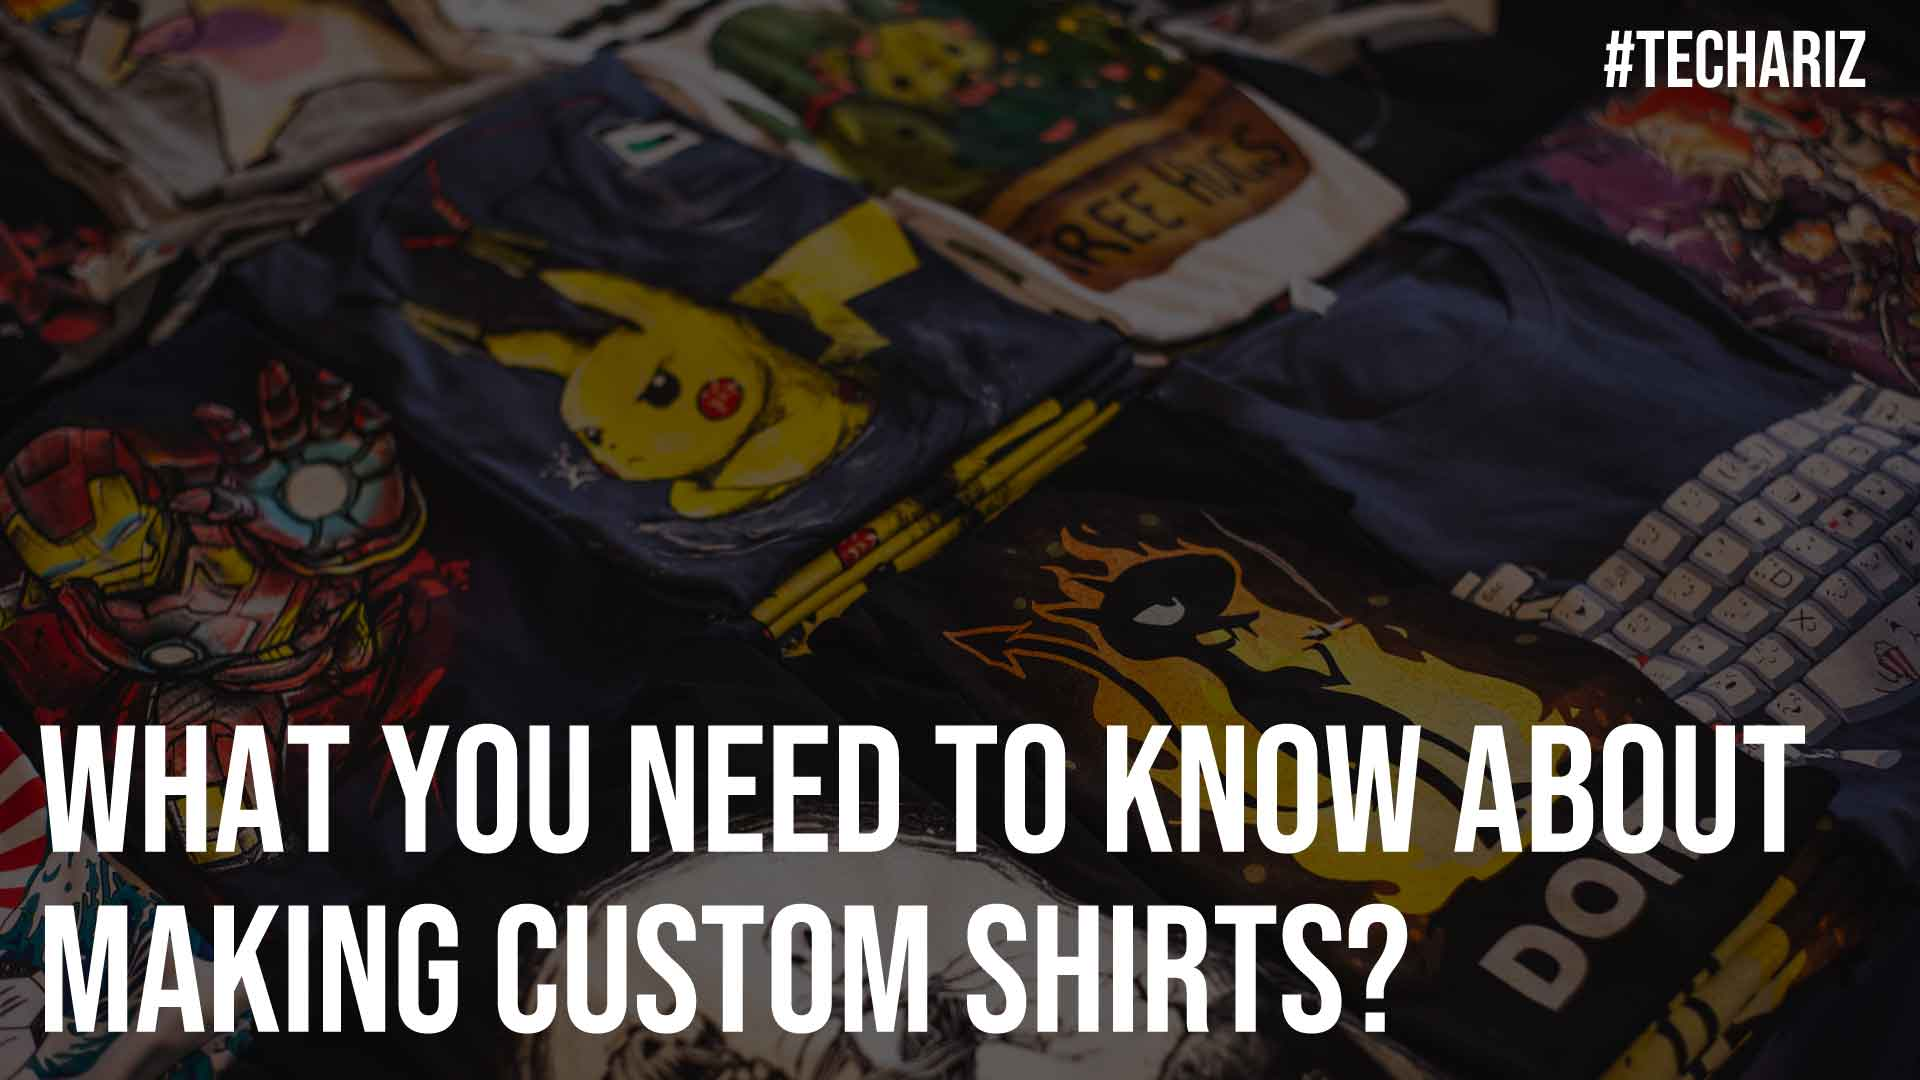 What You Need to Know About Making Custom Shirts